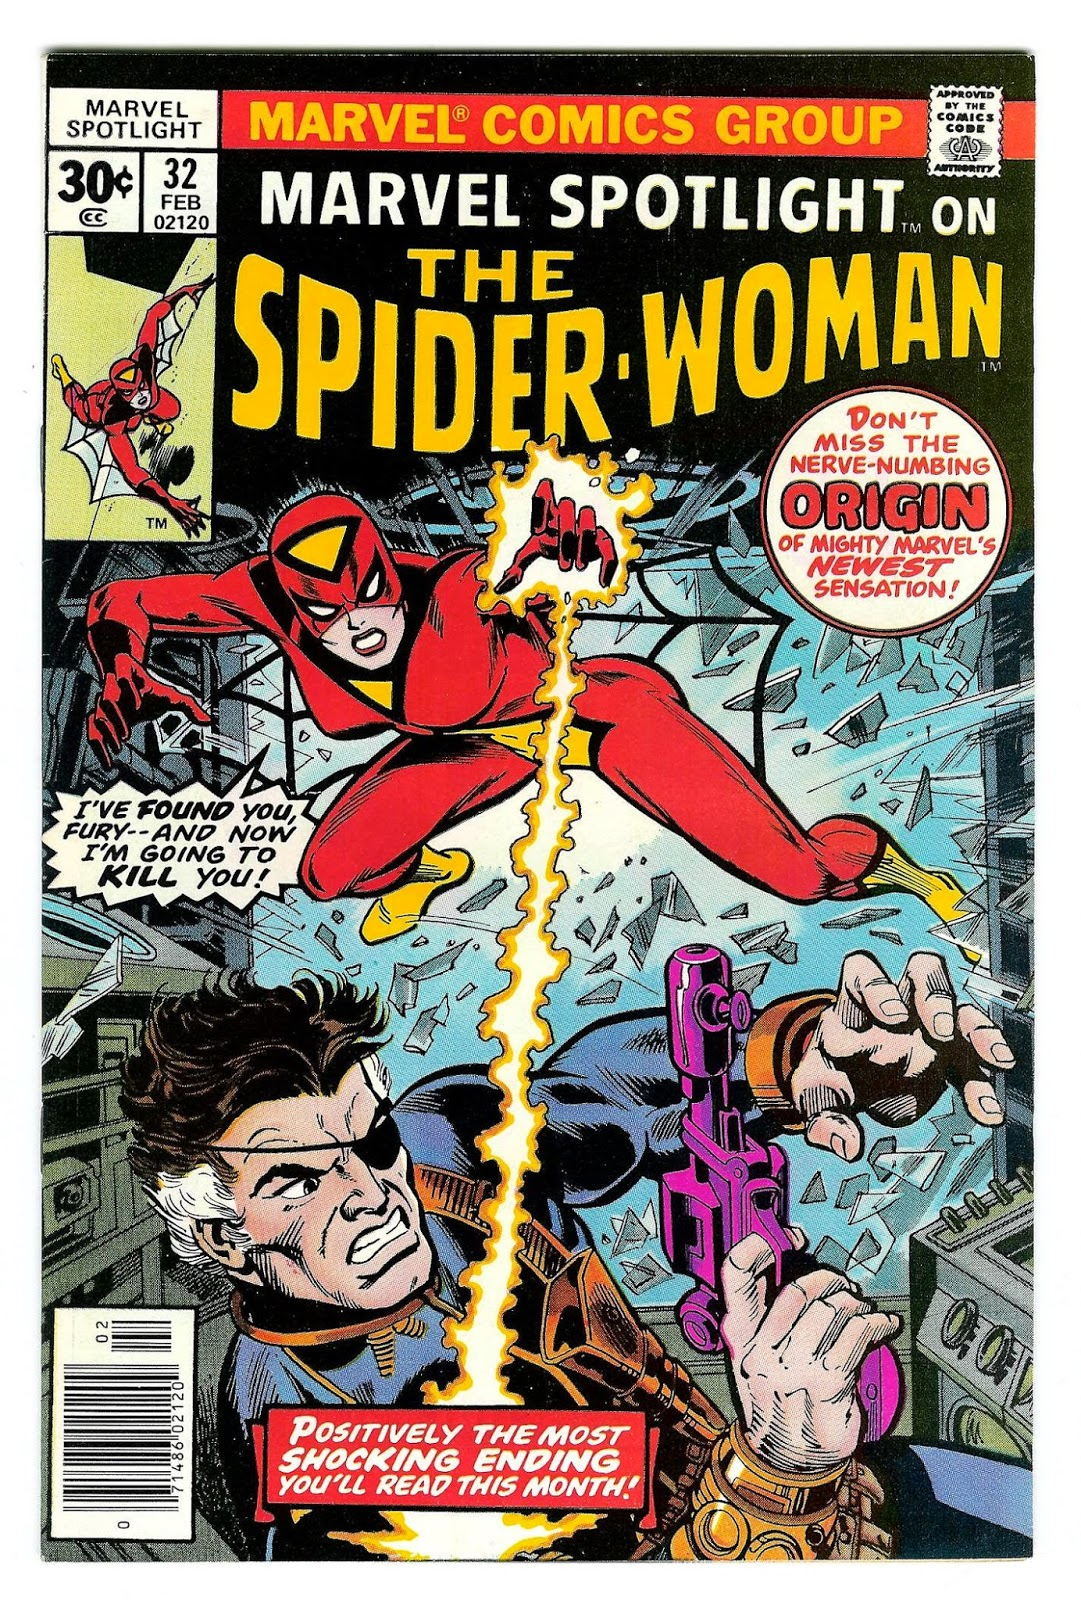 Marvel Spotlight 32 - Spider-Woman - Primera aparición